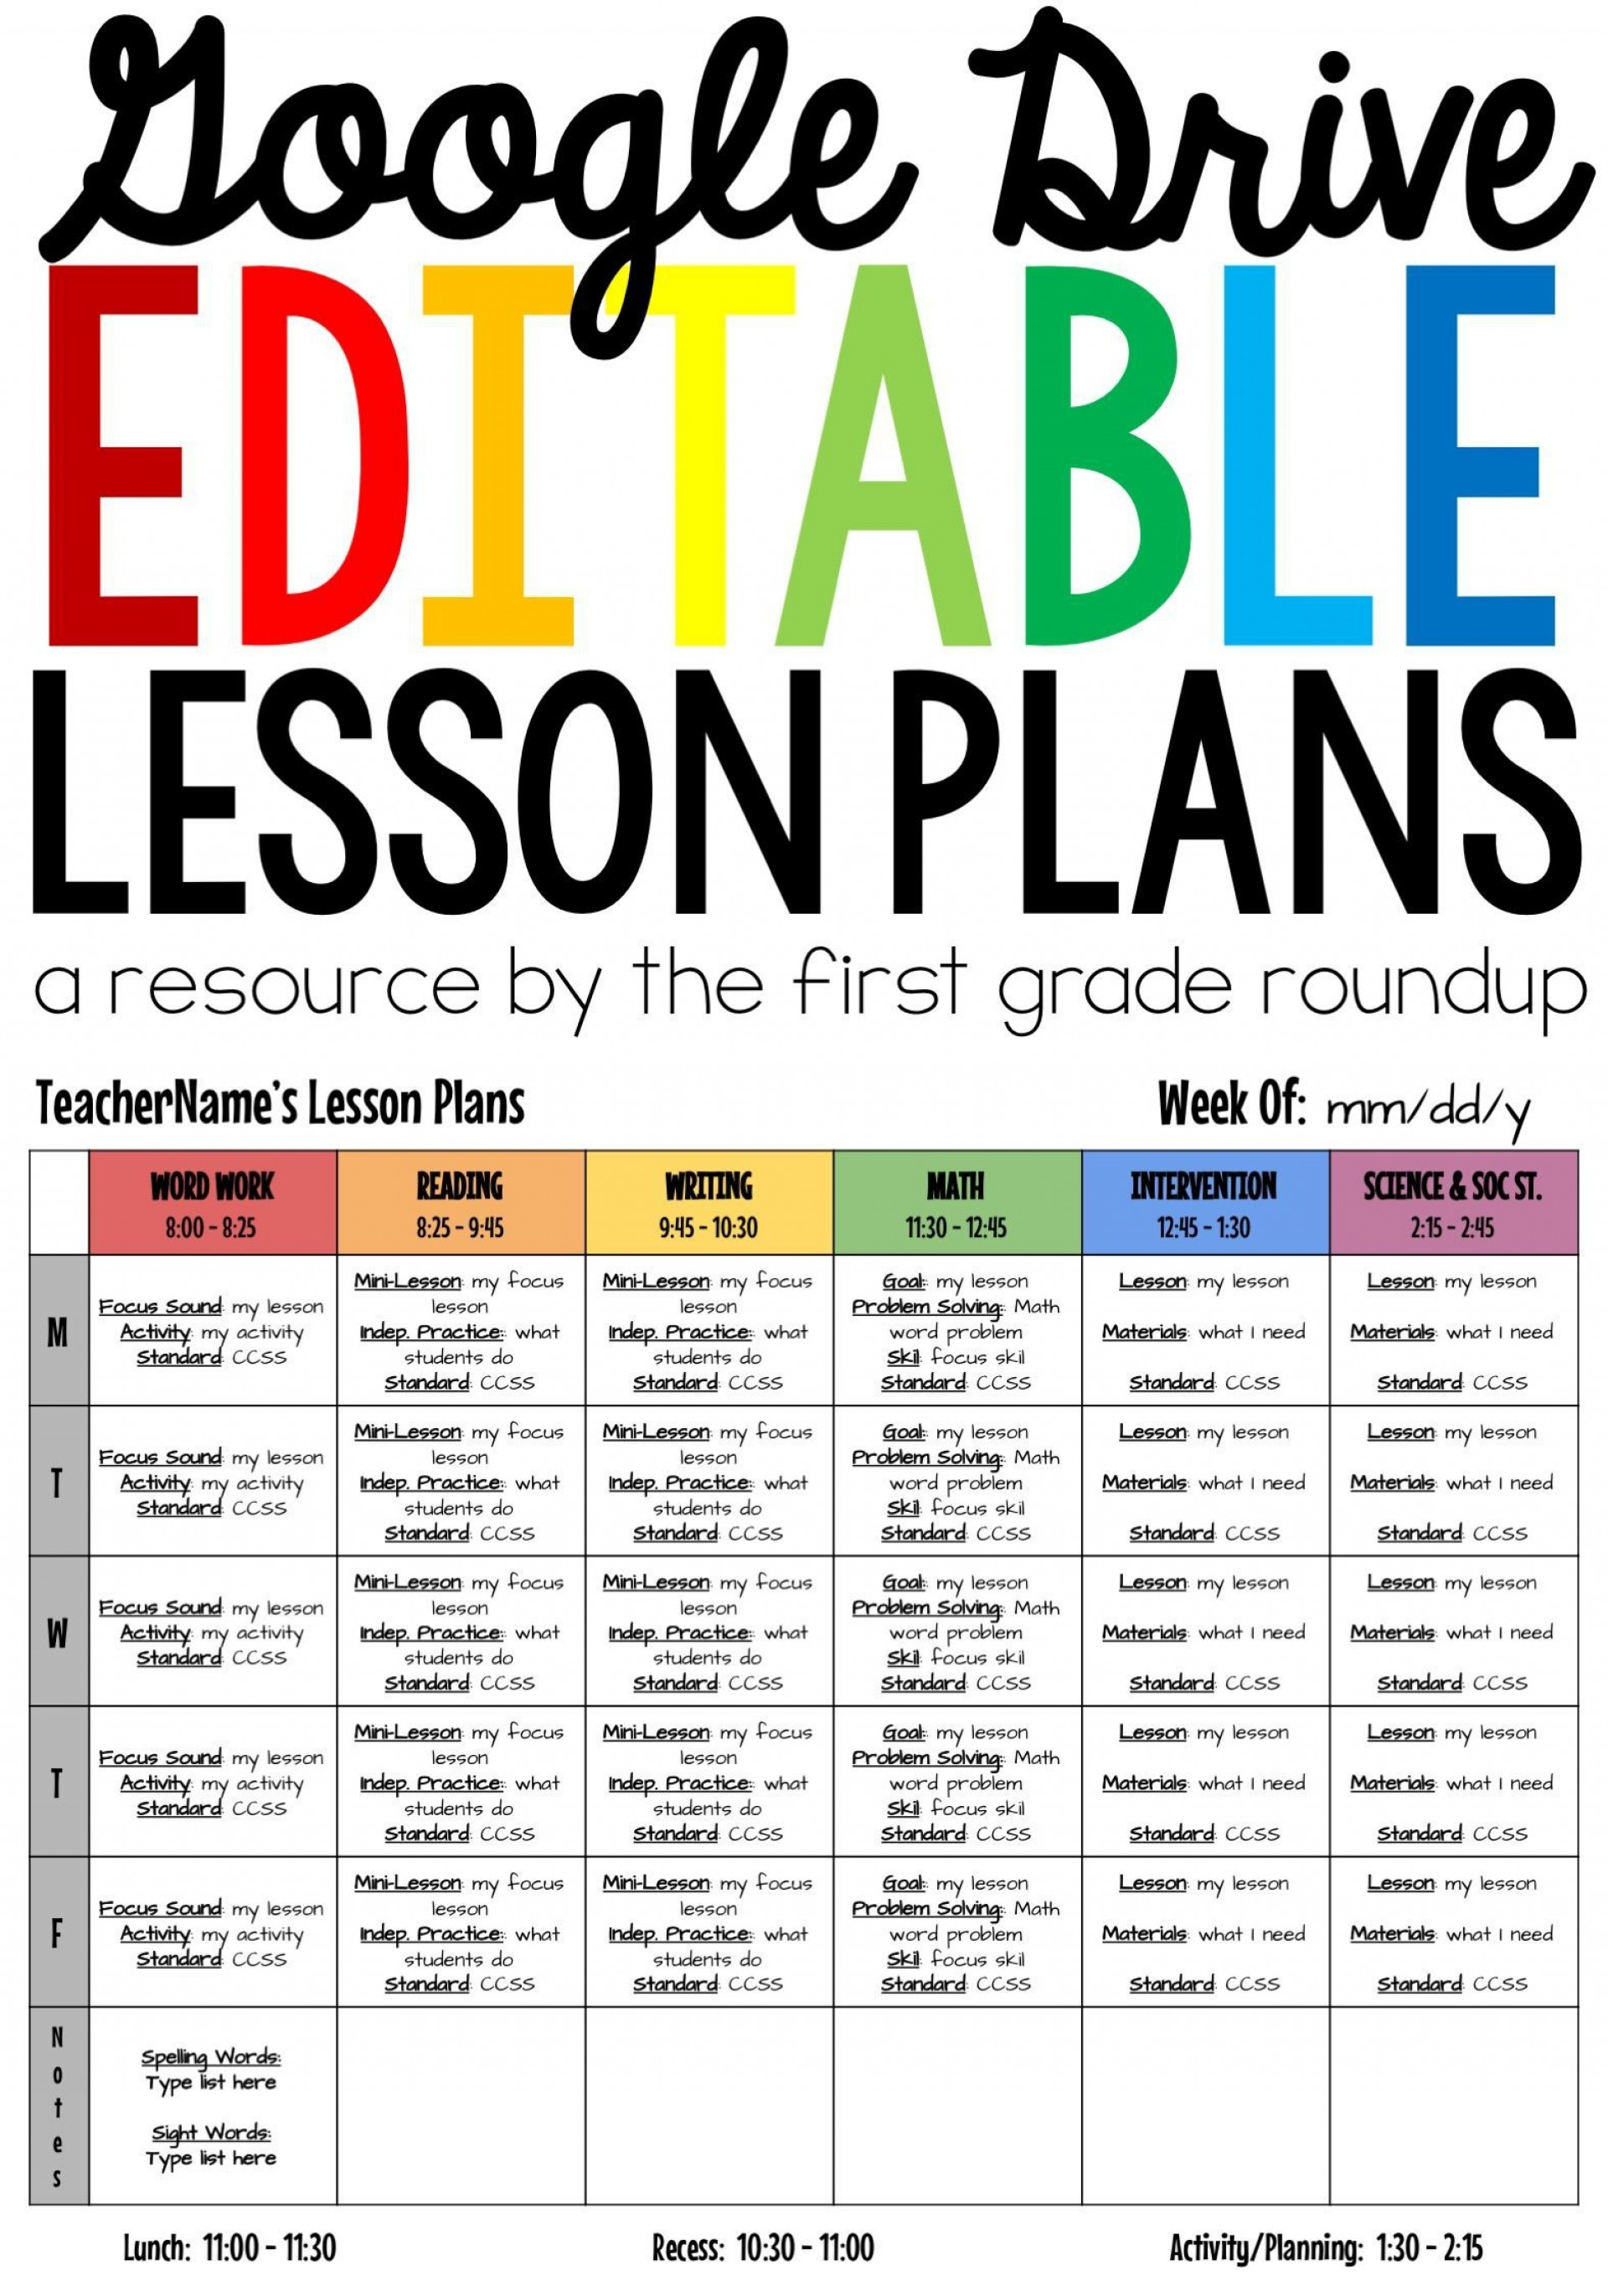 004 Dreaded Free Weekly Lesson Plan Template Google Doc High Definition 1920